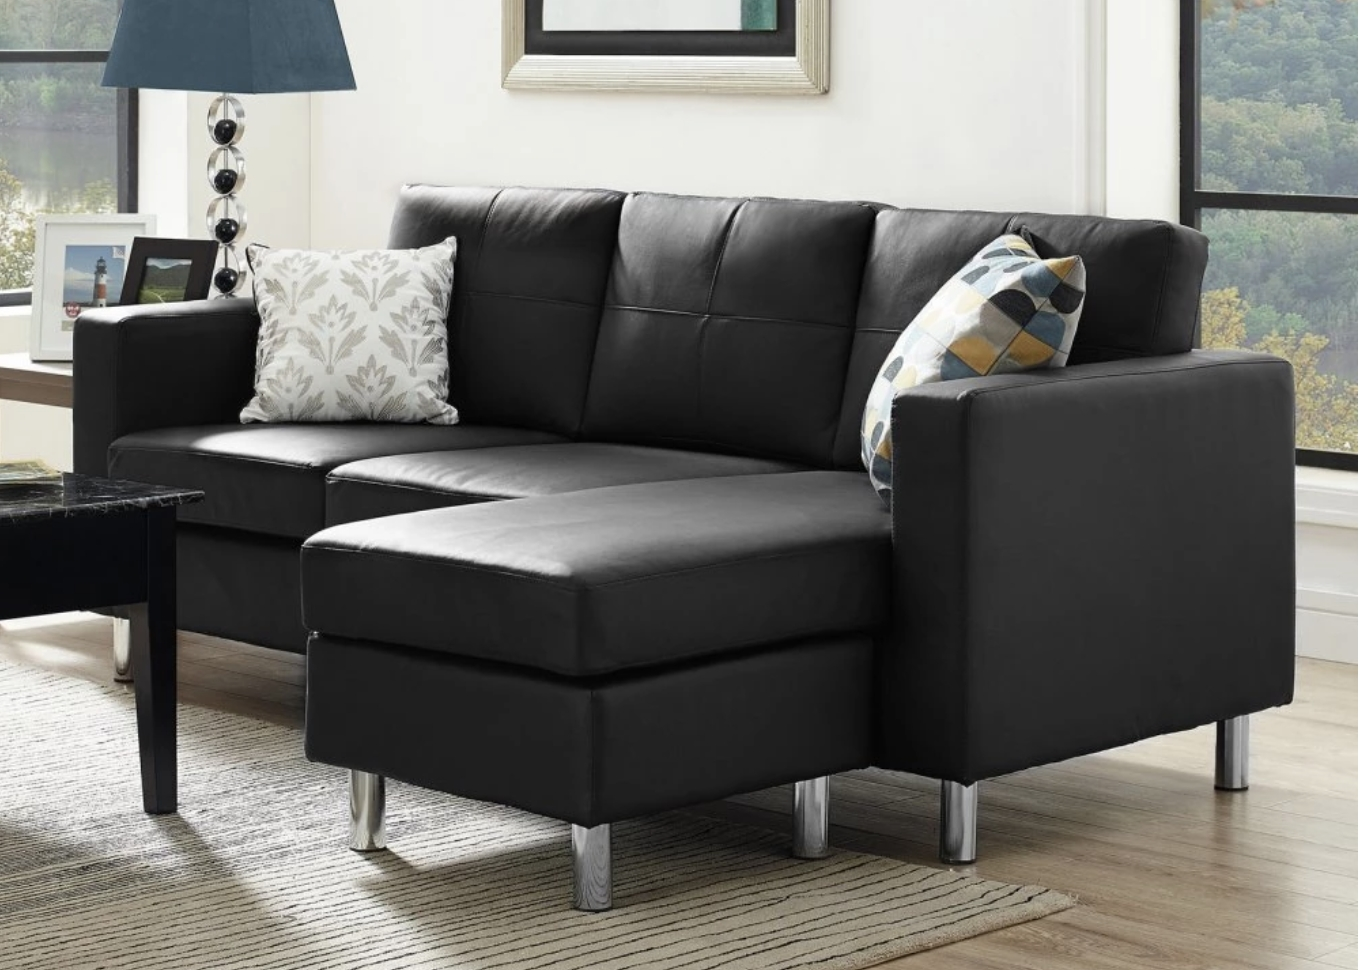 Small Sectional Sofas For Small Spaces For 2018 75 Modern Sectional Sofas For Small Spaces (2018) (View 13 of 20)